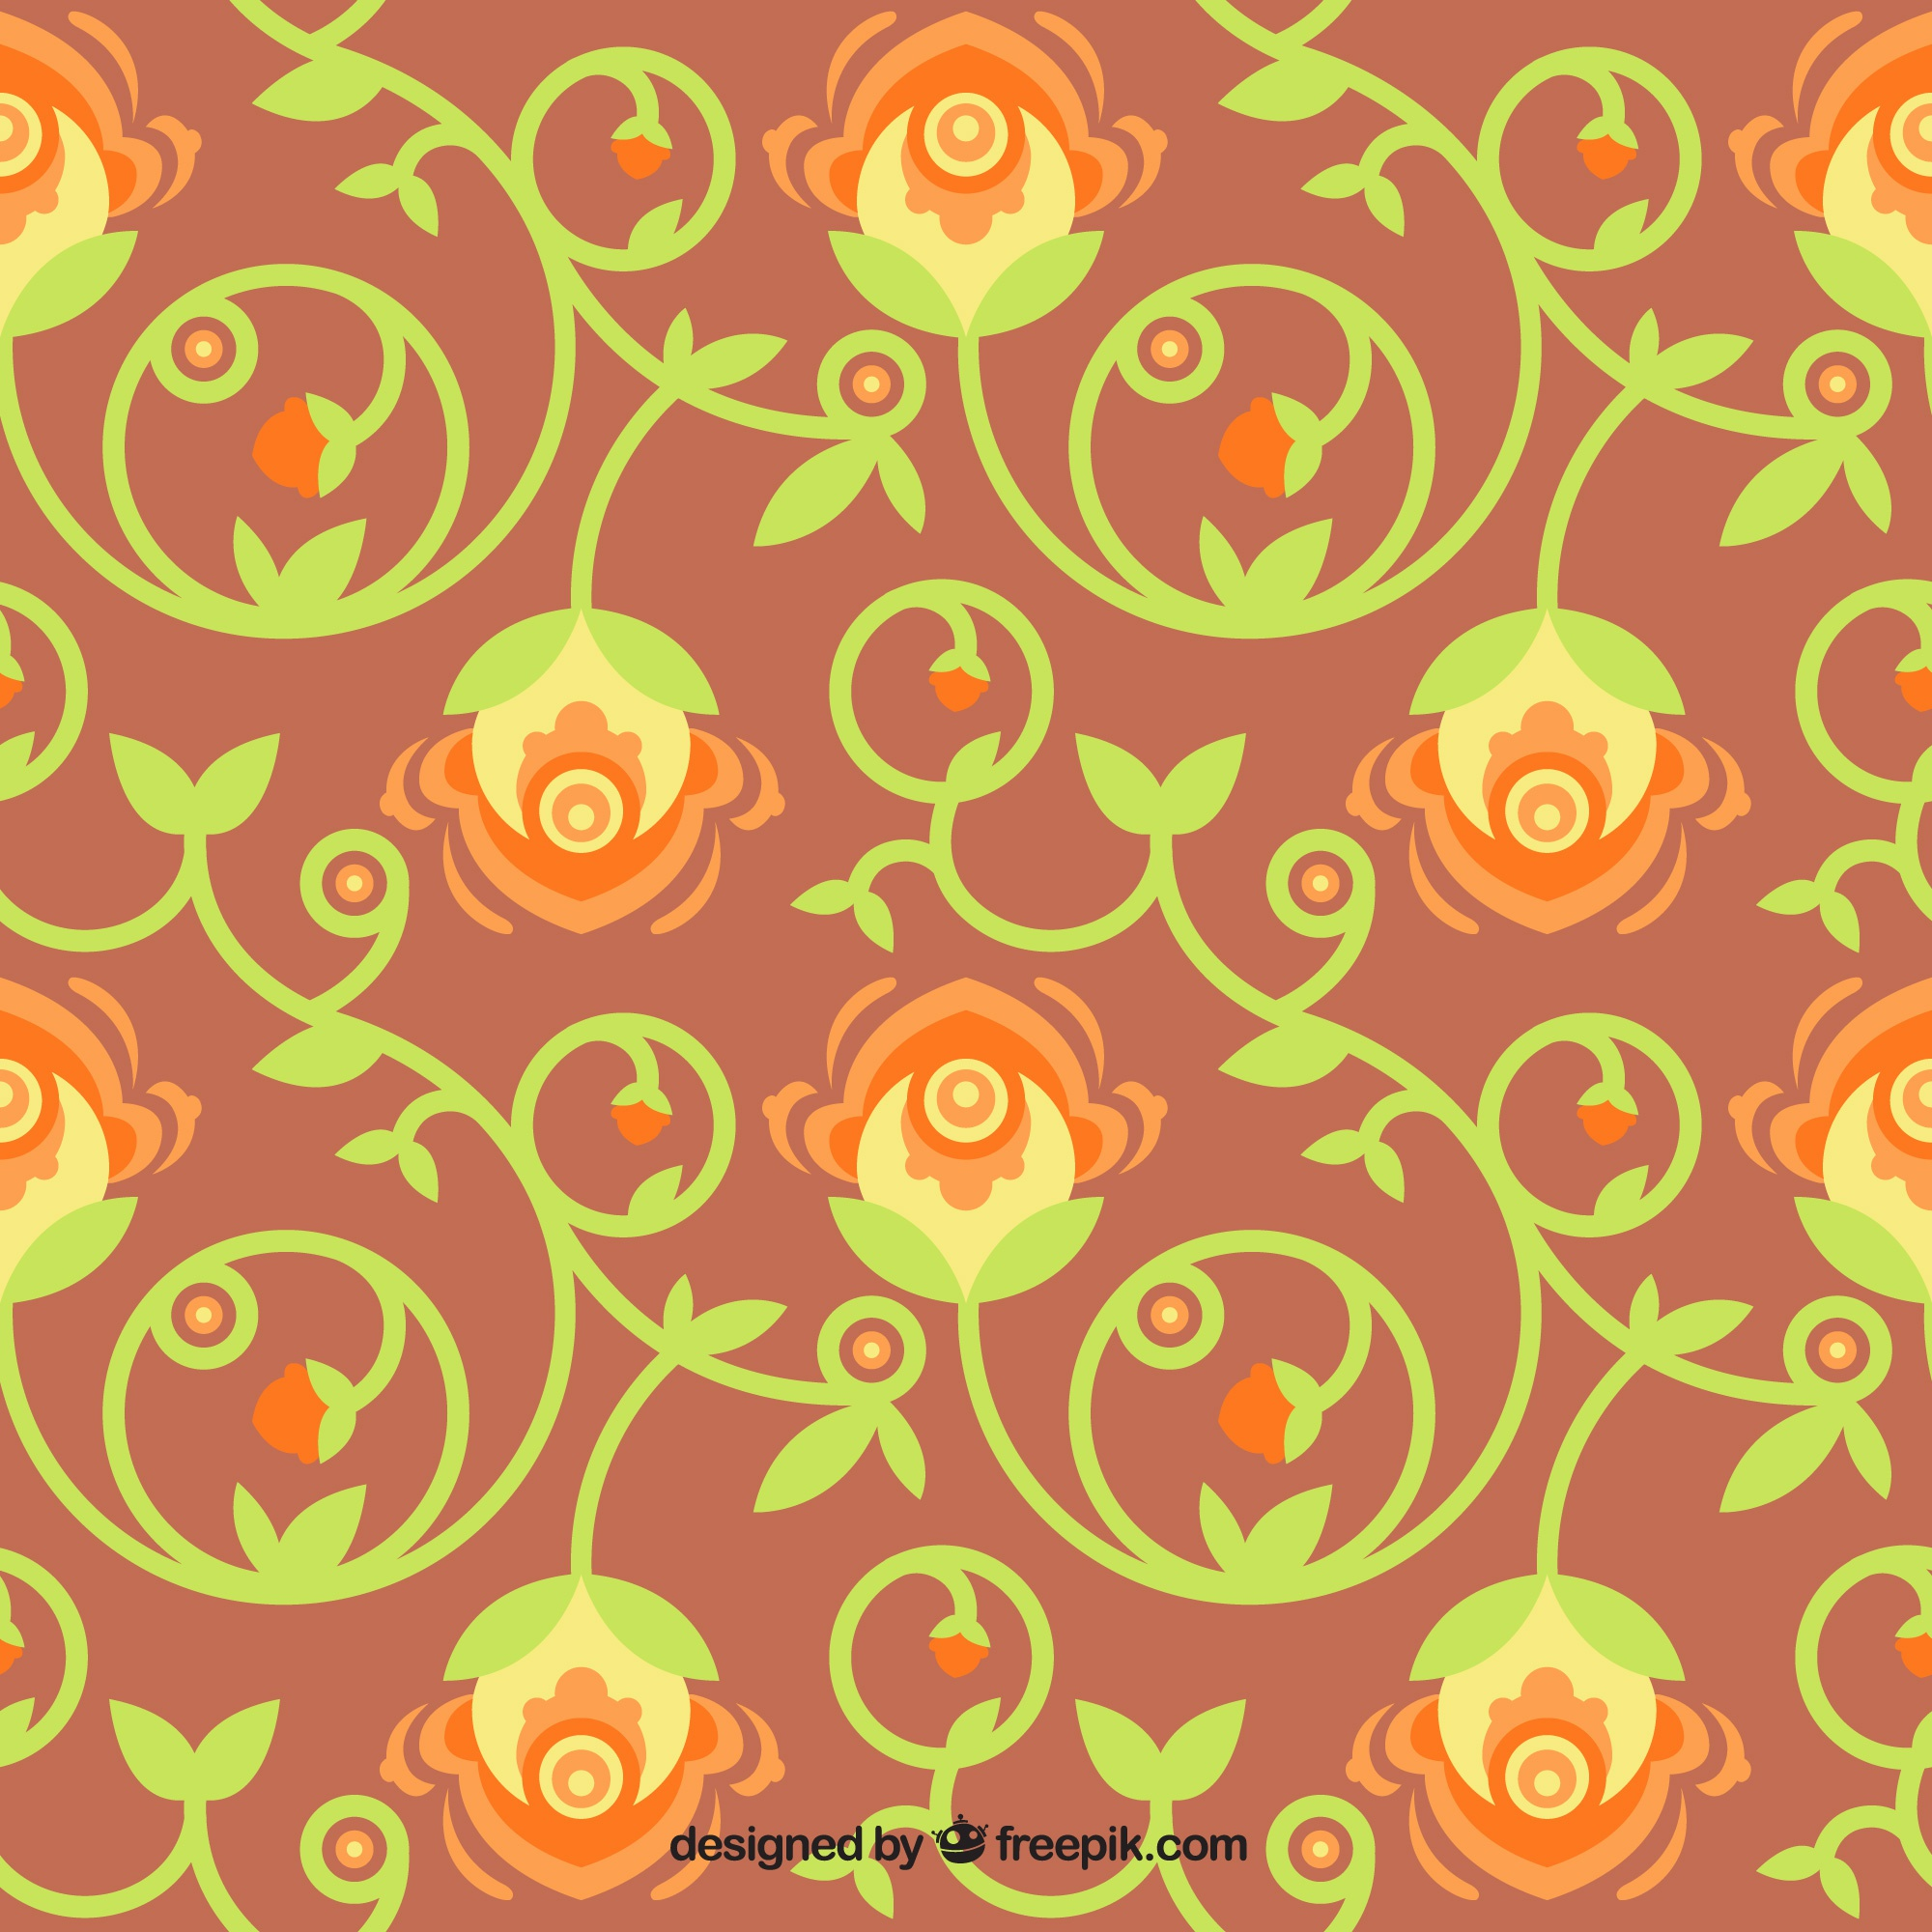 Flower background with ornamental leaves